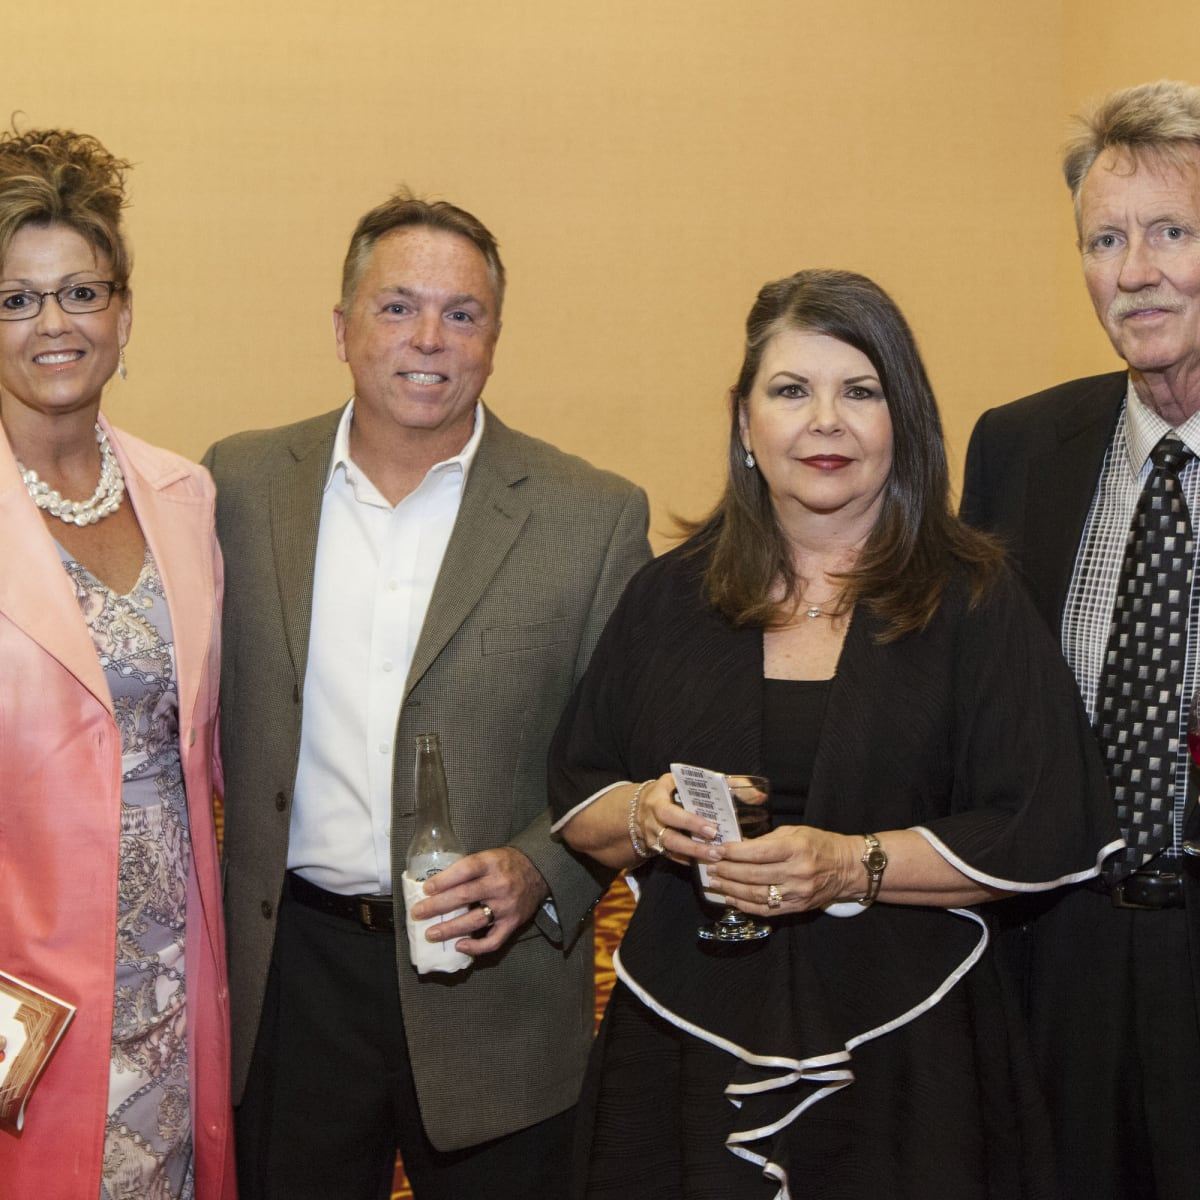 News, Shelby, Eye Care for Kids, June 2015, Brenda and Pat Cuty, Kathy Rutledge, Robert Taylor,